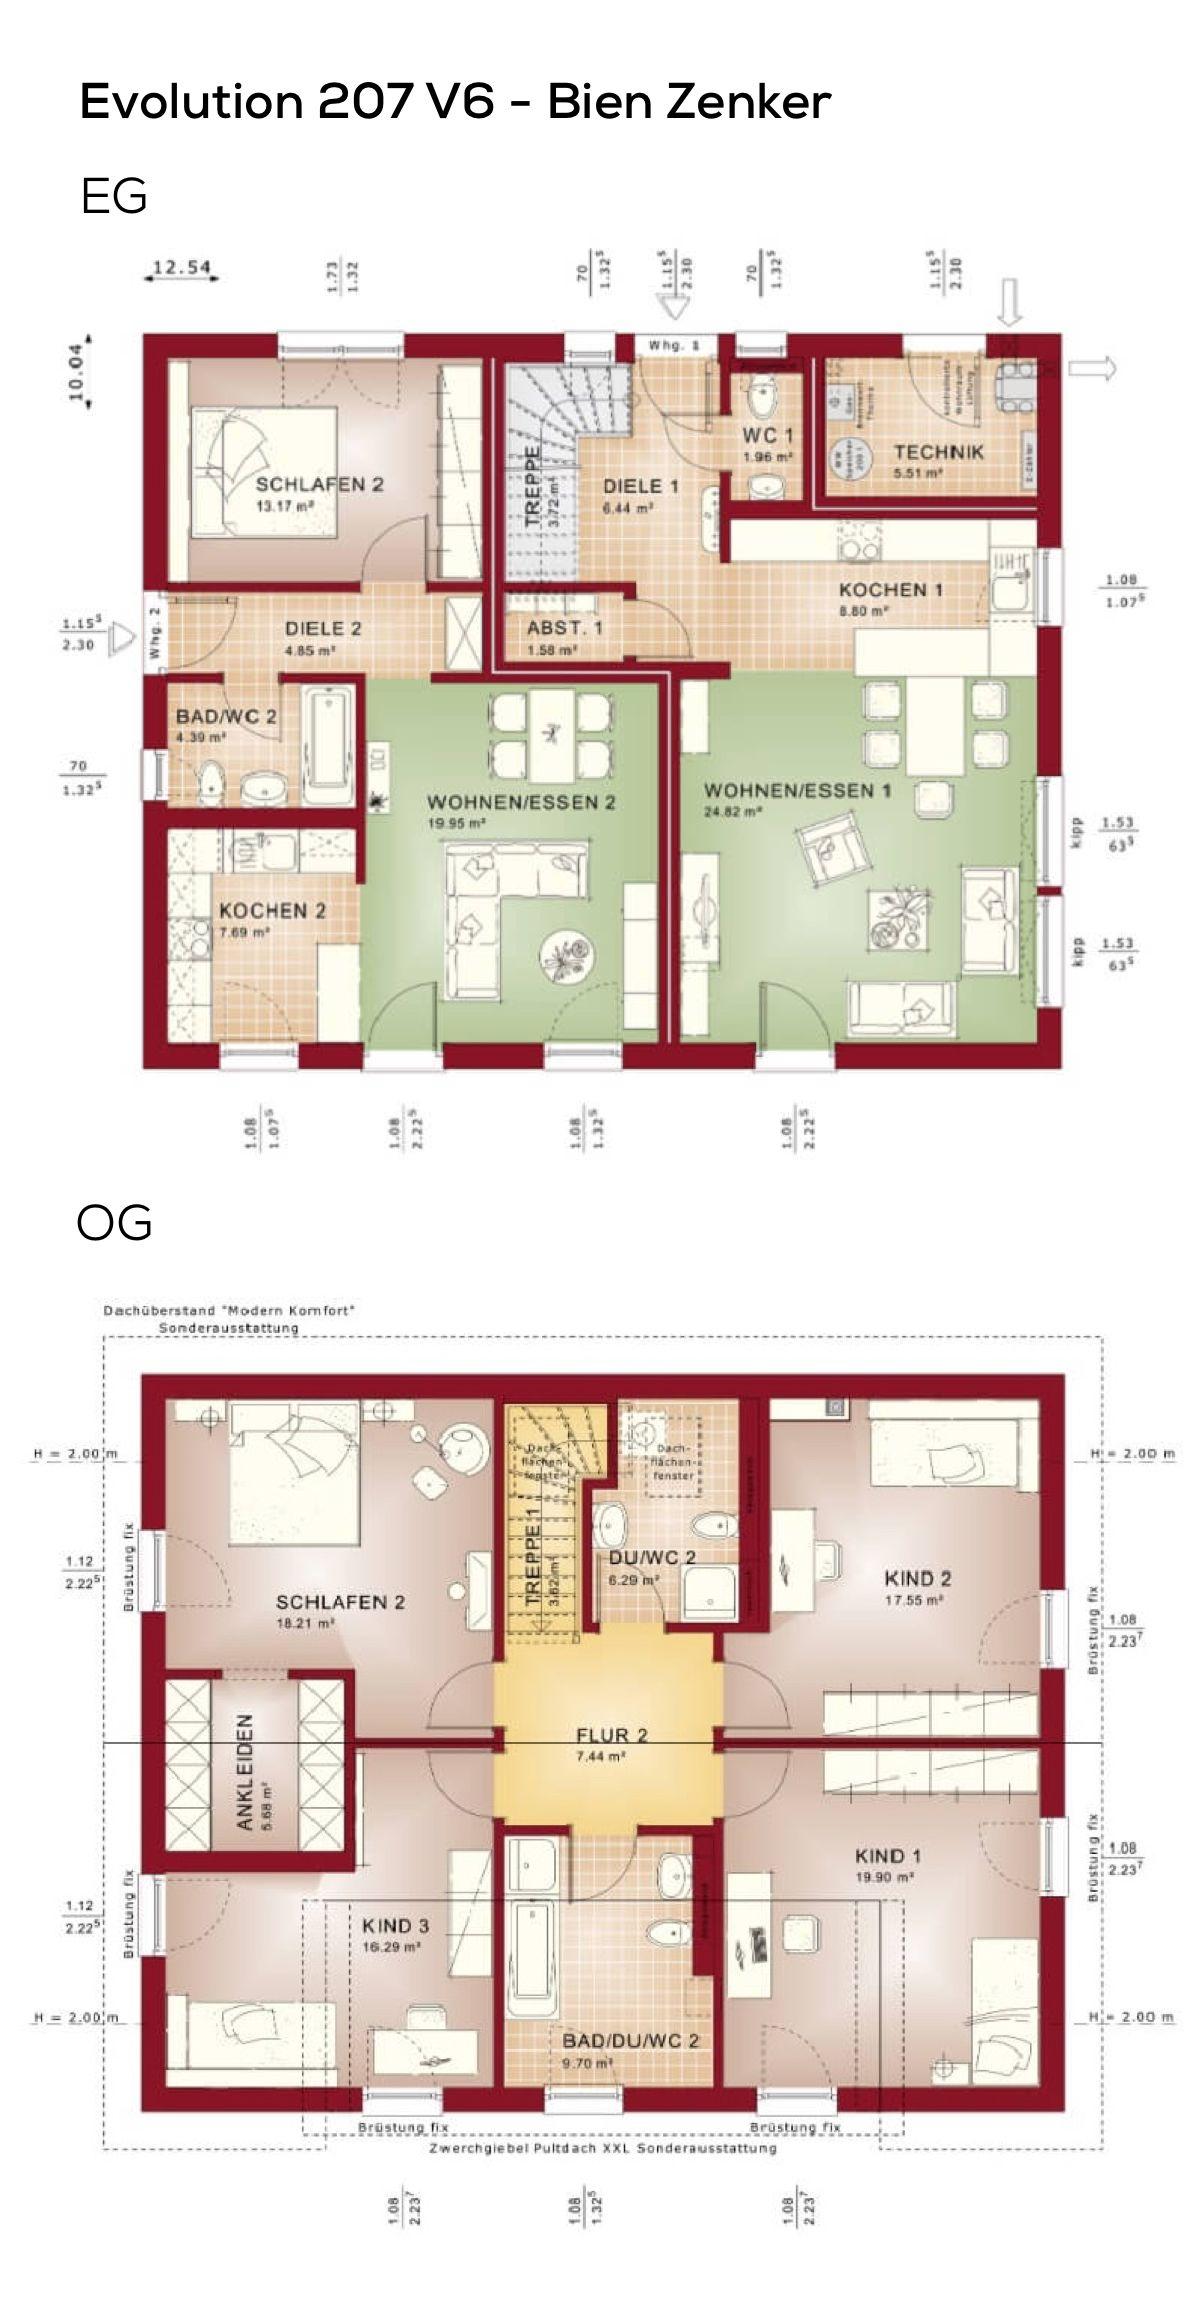 grundriss einfamilienhaus mit einliegerwohnung satteldach mit zwerchgiebel 7 zimmer 208 qm. Black Bedroom Furniture Sets. Home Design Ideas